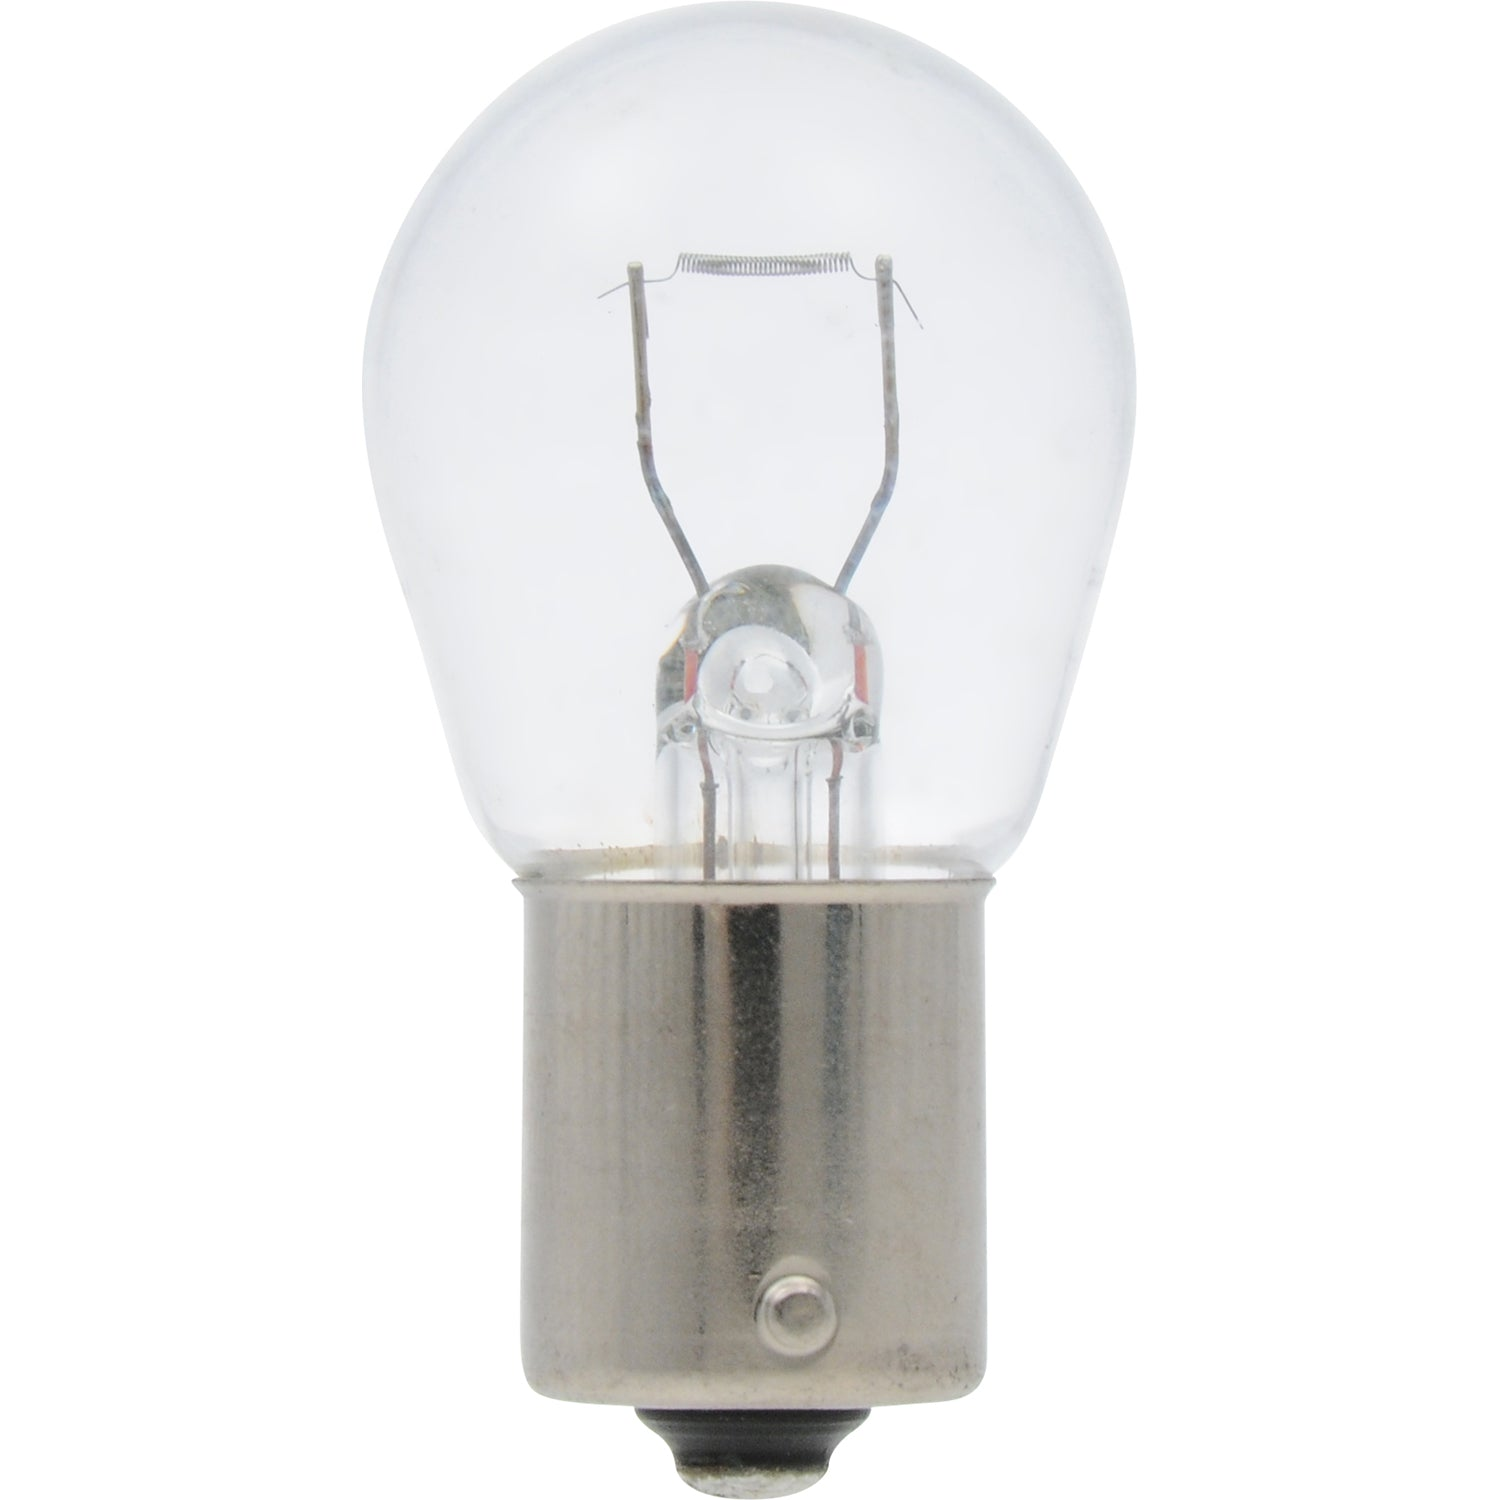 sylvania loading lighting smart bulb is rgb lightify daylight light osram resource bulbs led image pack itm